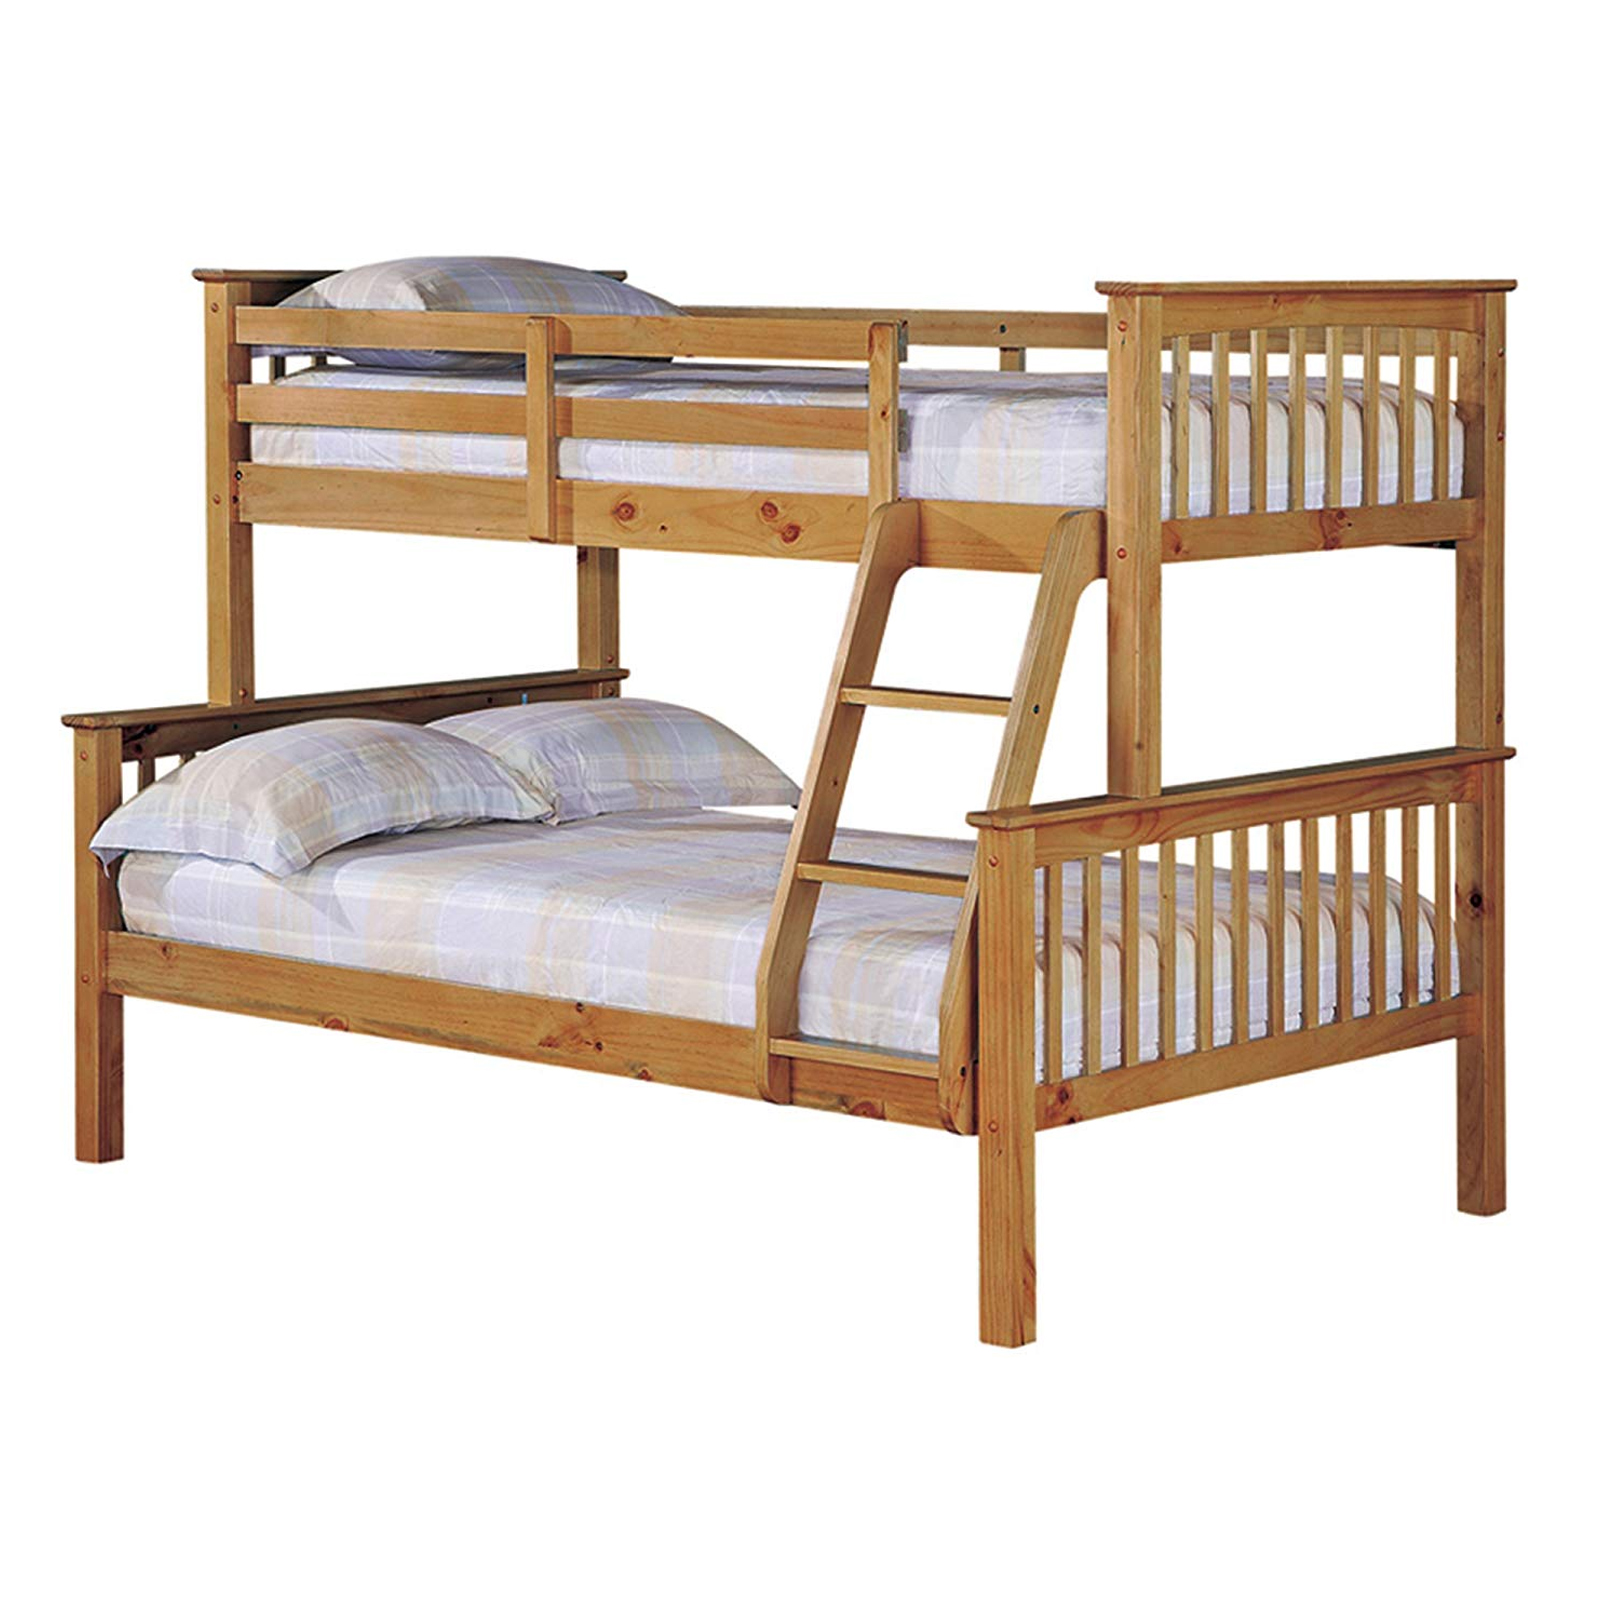 Picture of: Triple Sleeper High Quality Wax Antique Bunk Bed Sleep Kings